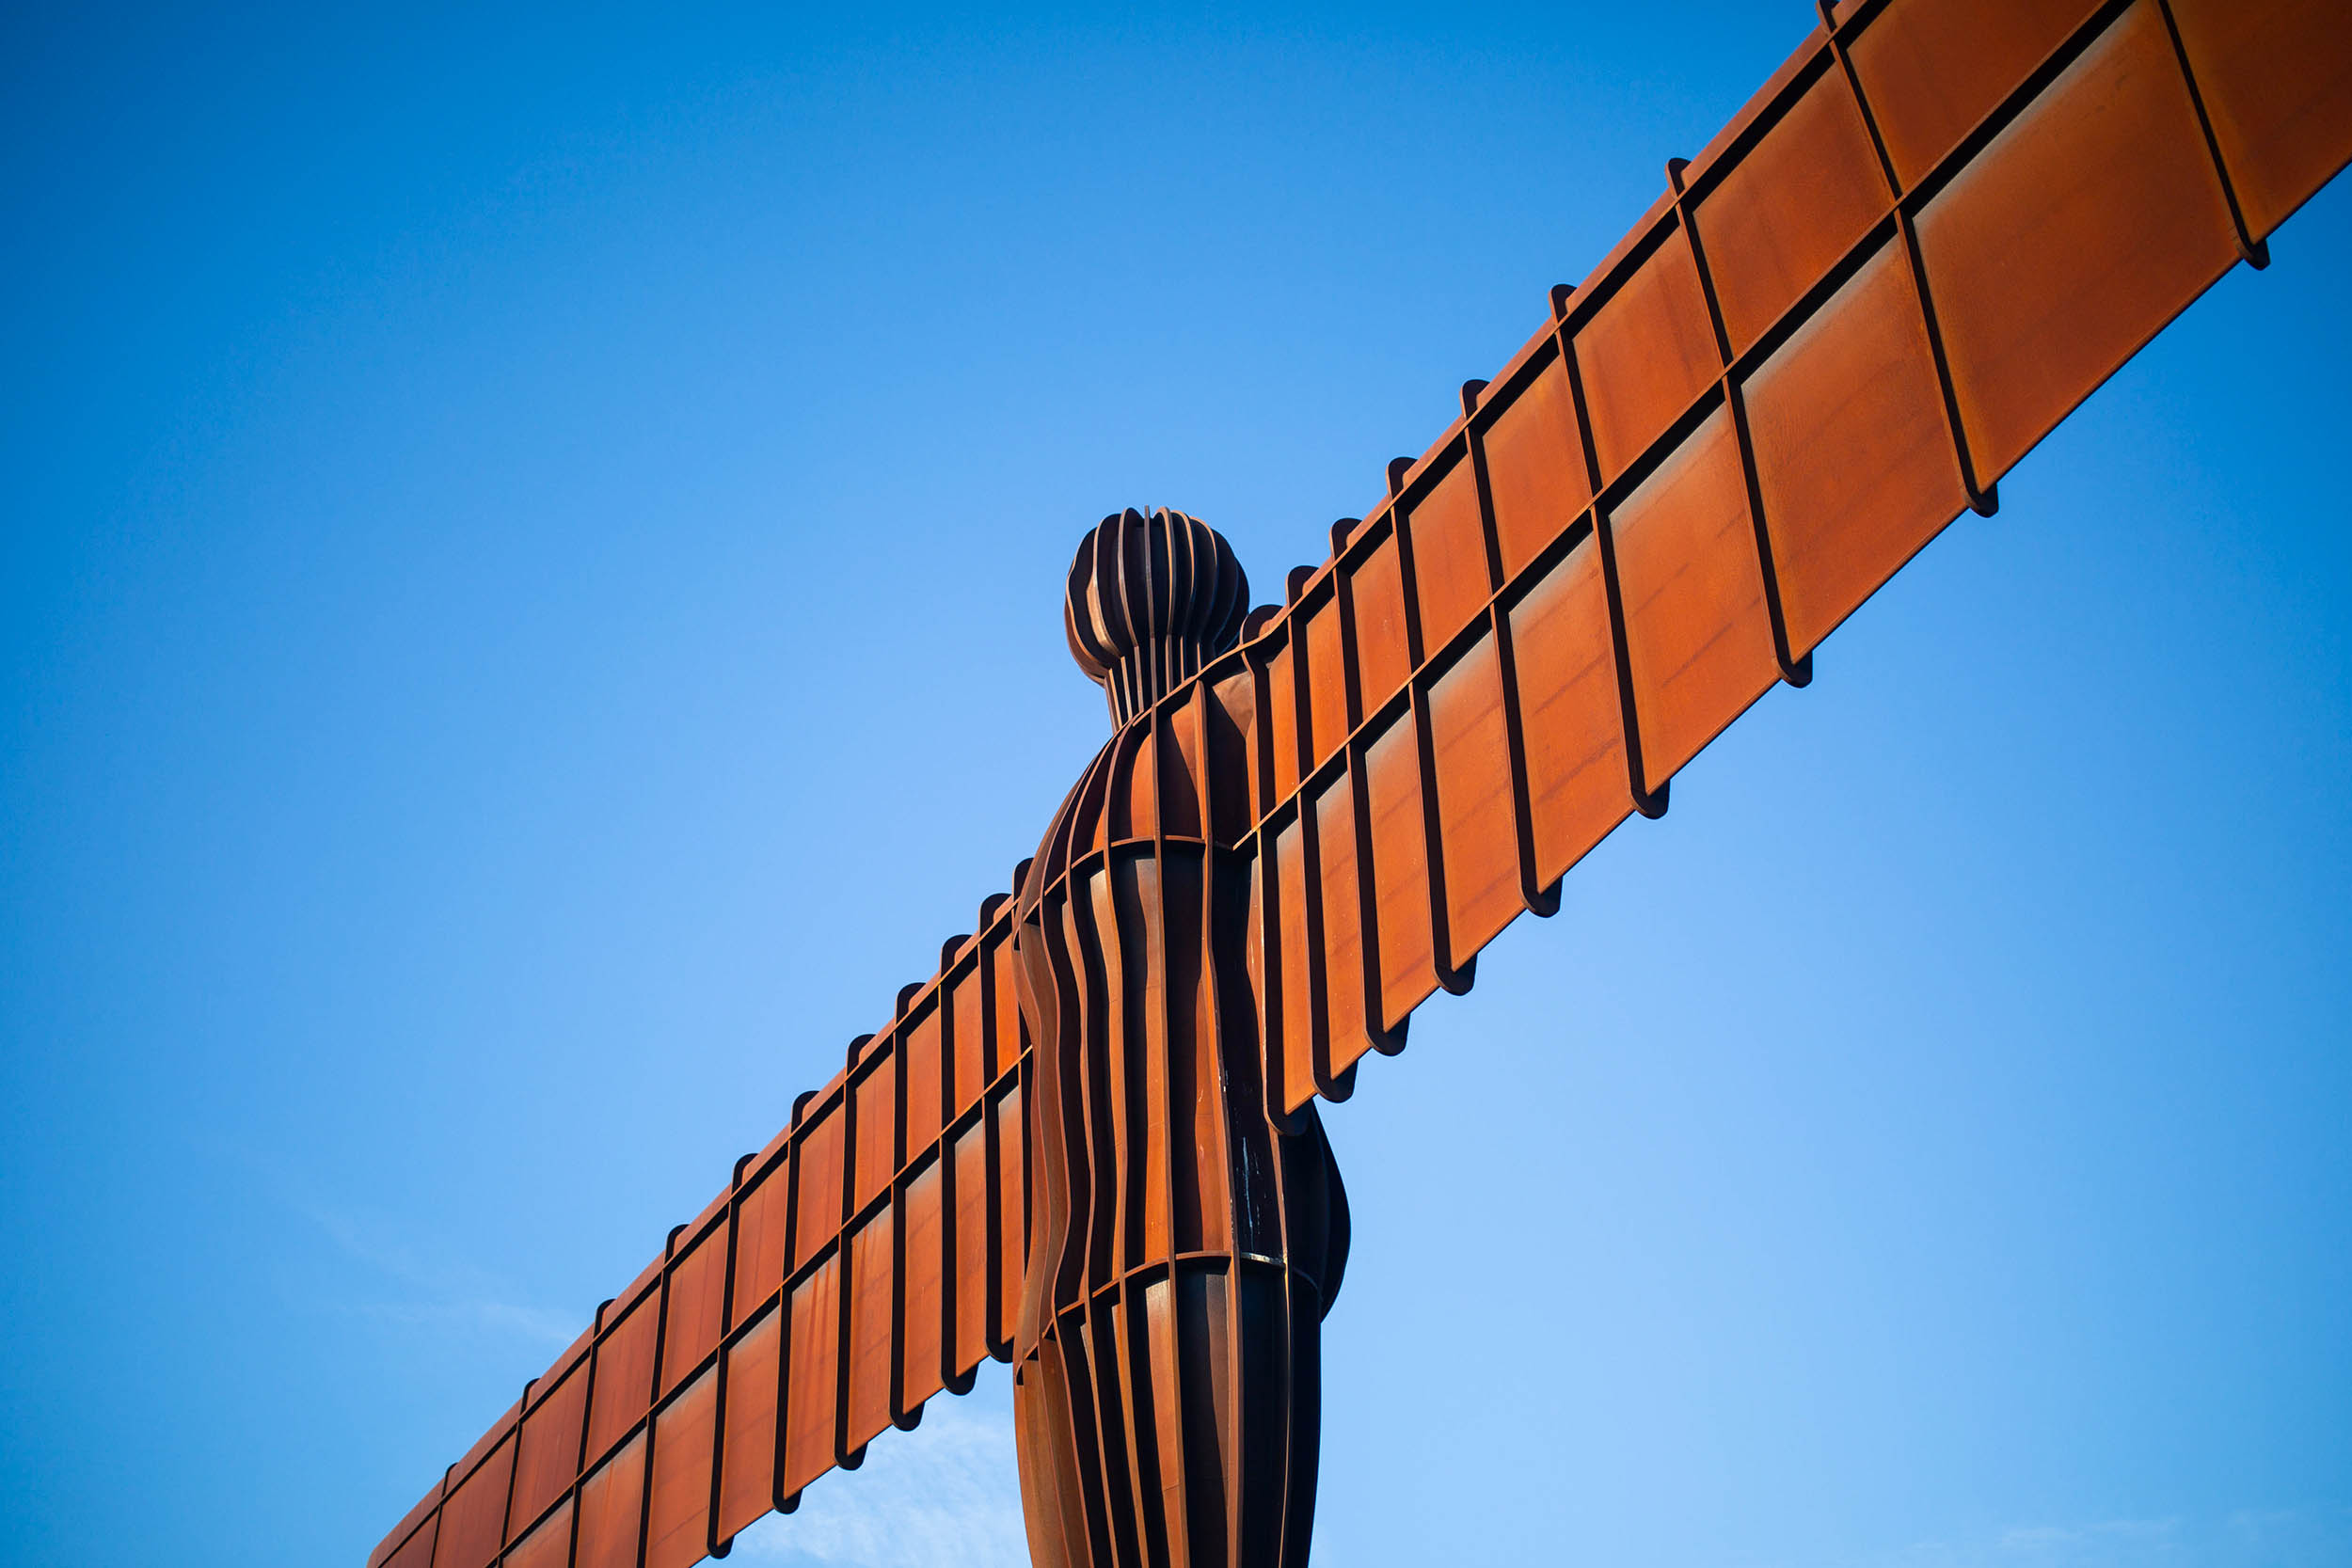 ENGLAND_NEWCASTLE_ANGELOFTHENORTH_0003